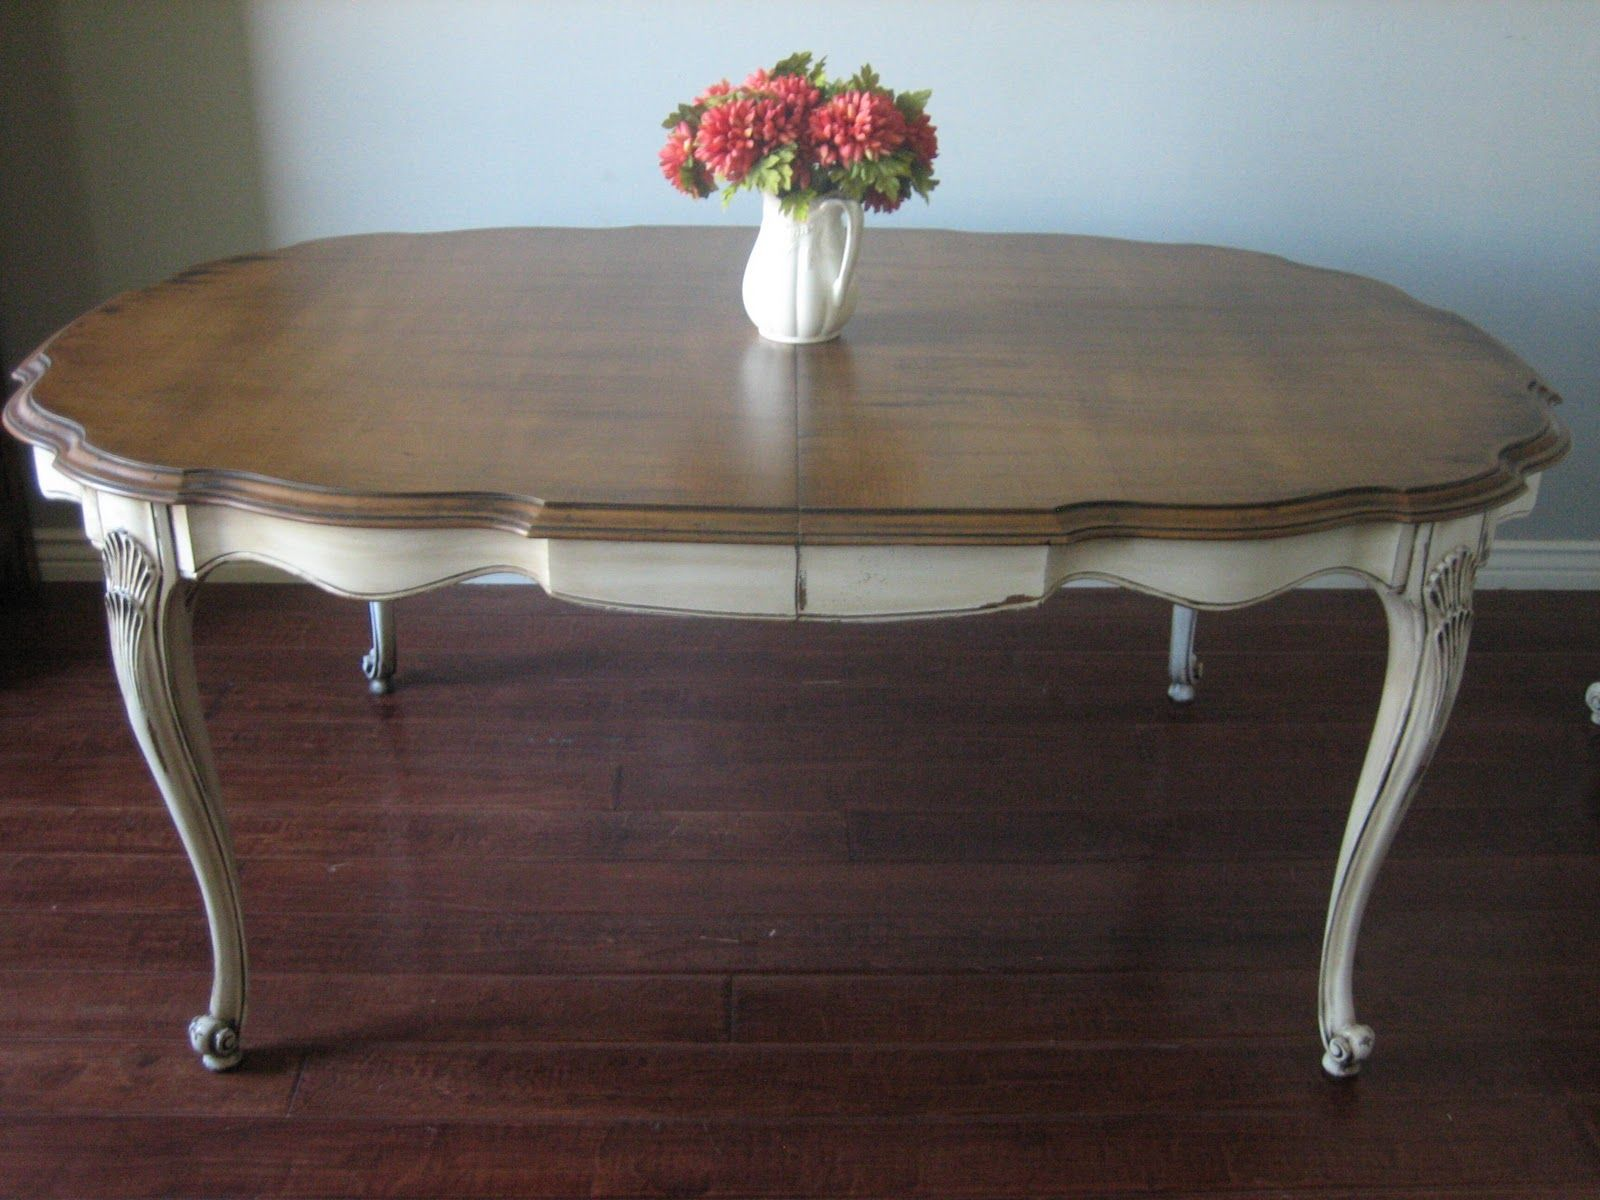 French Provincial Dining Room Sets 1000 Images About Tables On Pinterest Table And Chairs Dining